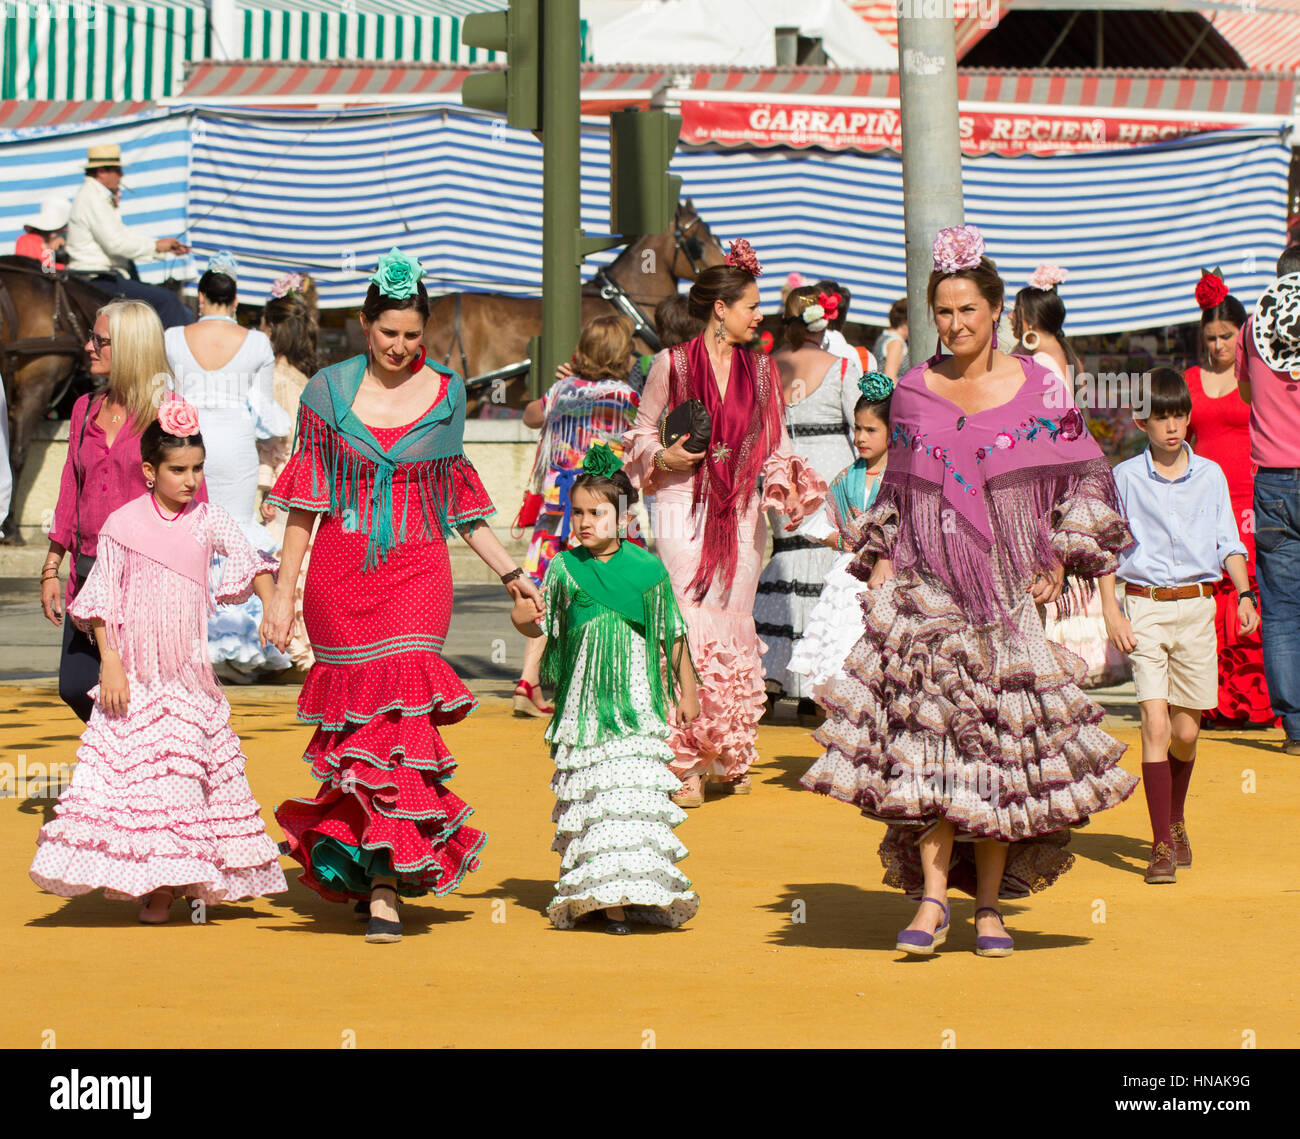 SEVILLE, SPAIN - APR, 25: women dressed in traditional costumes at the Seville's April Fair on April, 25, 2014 - Stock Image